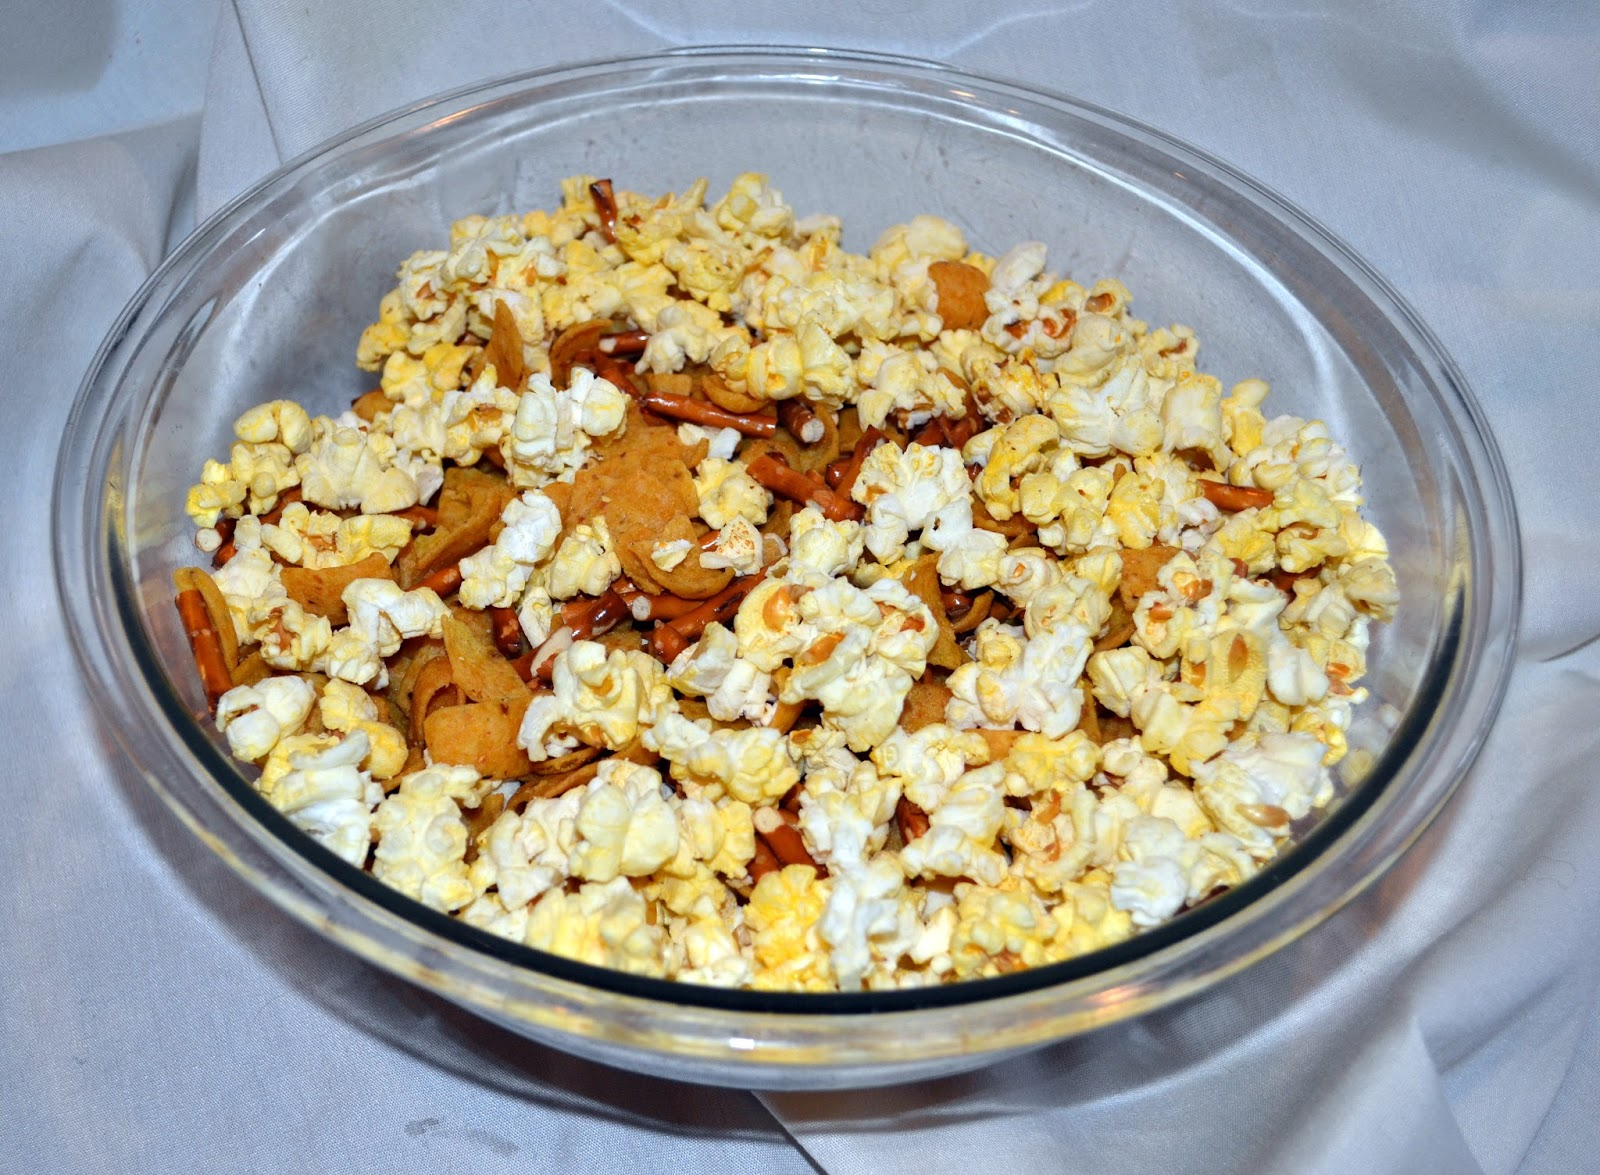 popcorn with chocolate, fritos and pretzels